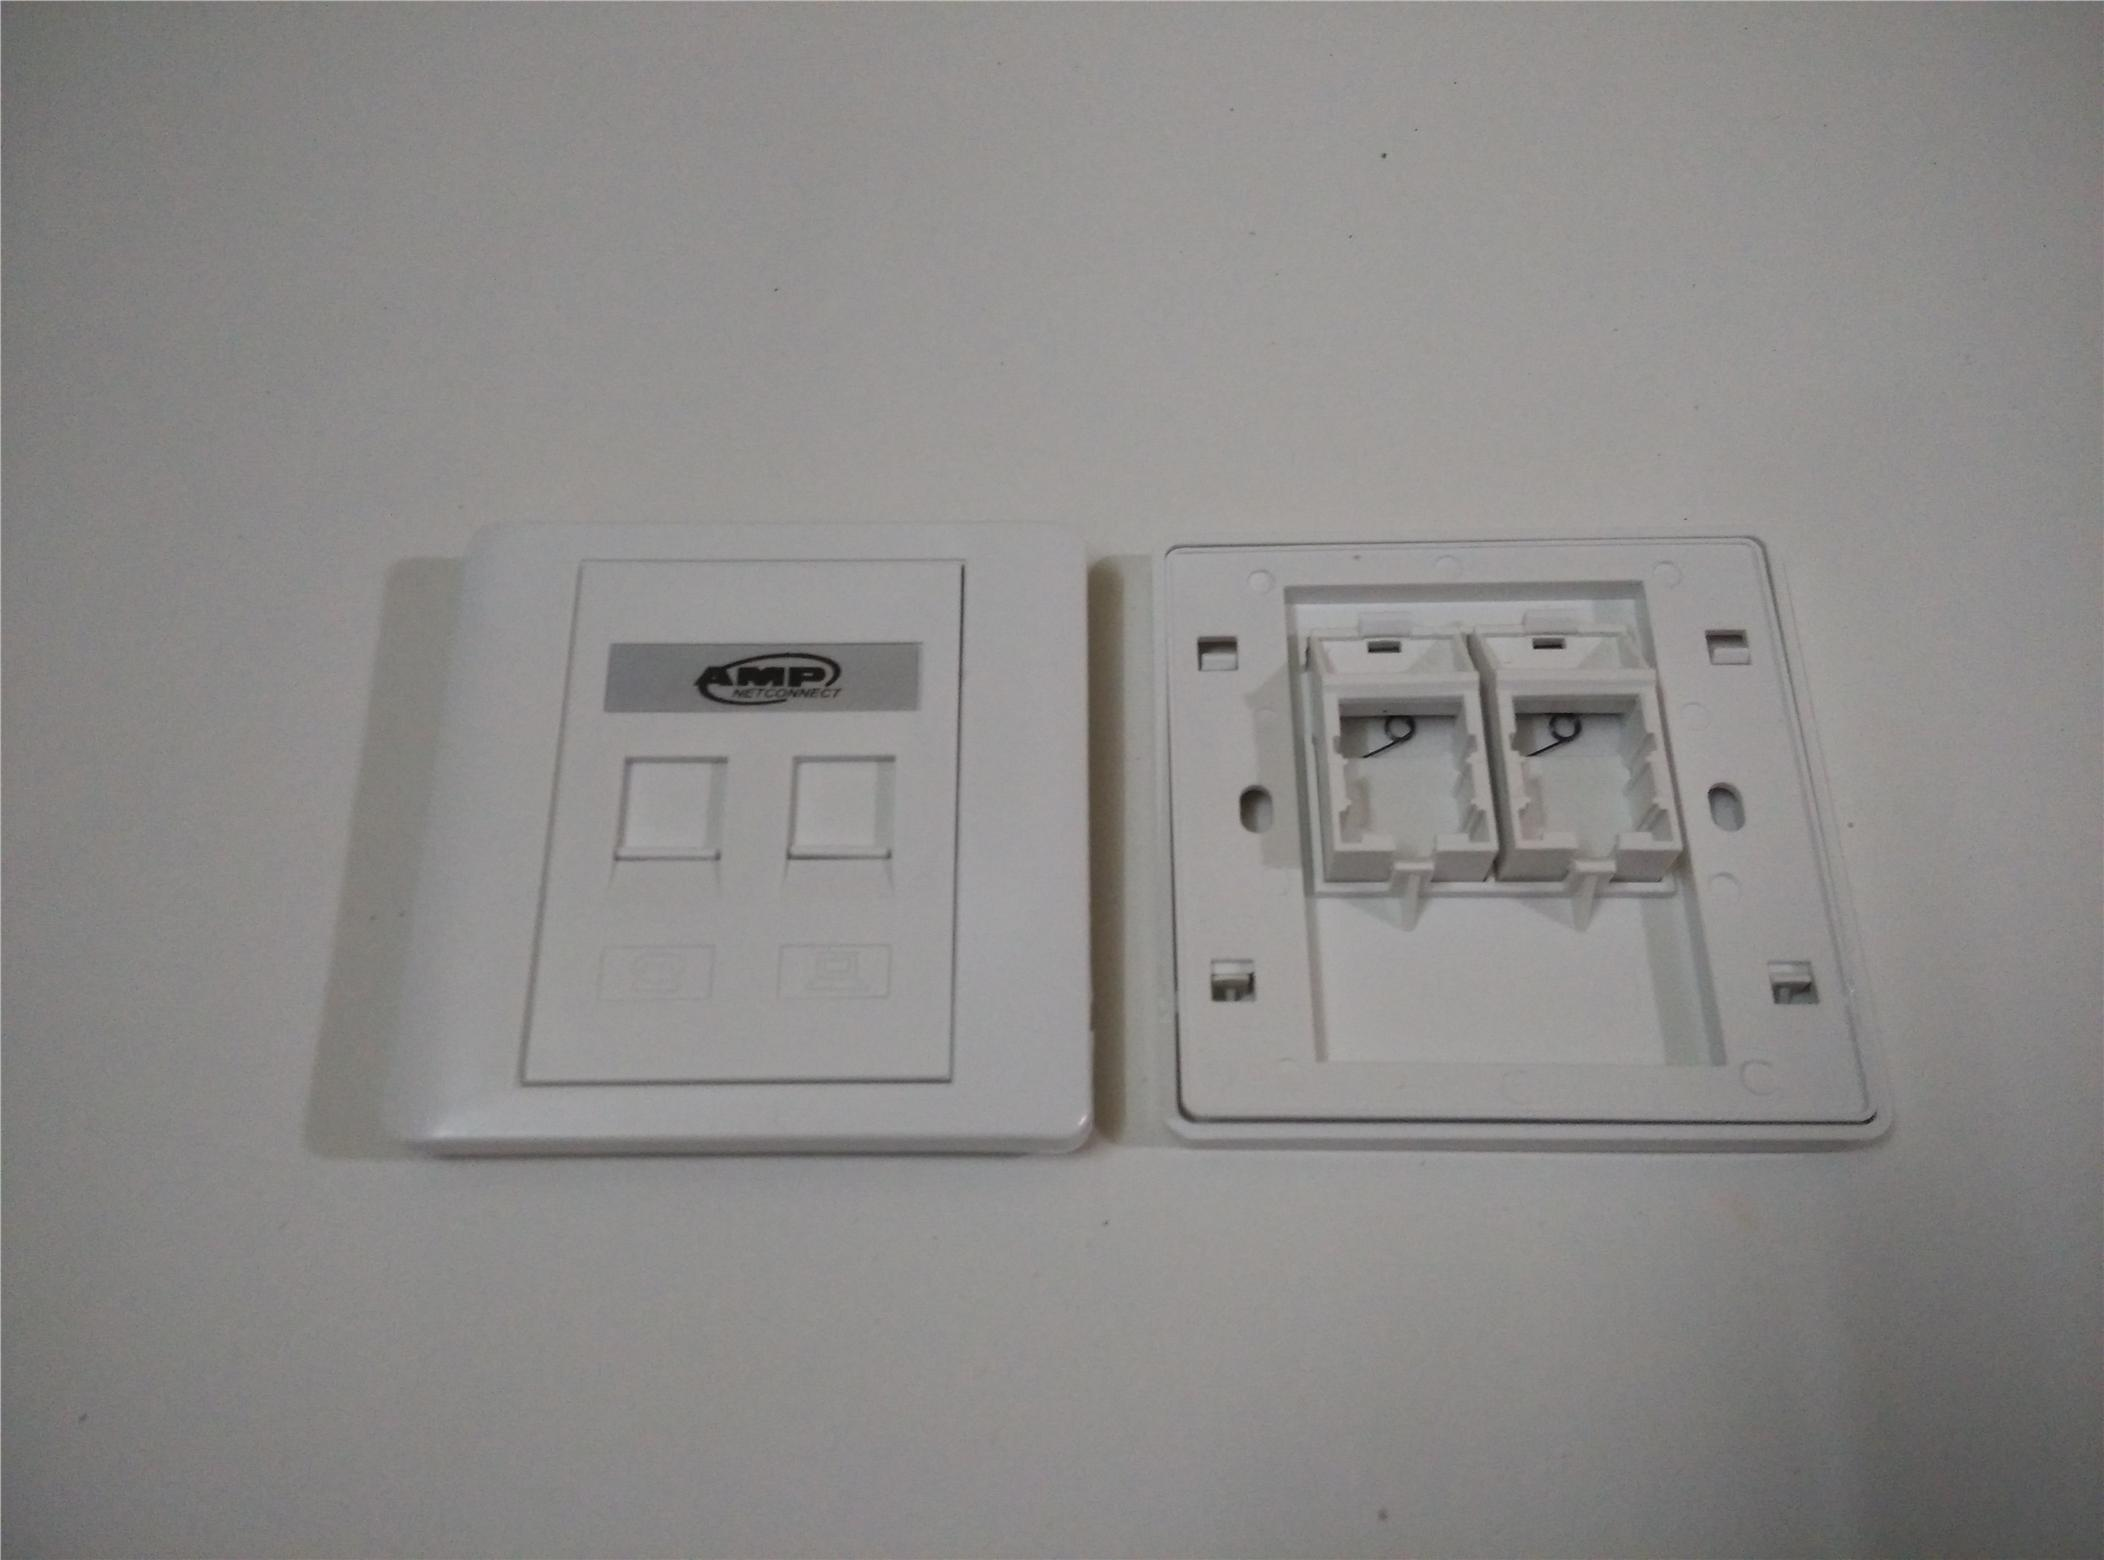 Network cable - 2 gang Flat Type Faceplate